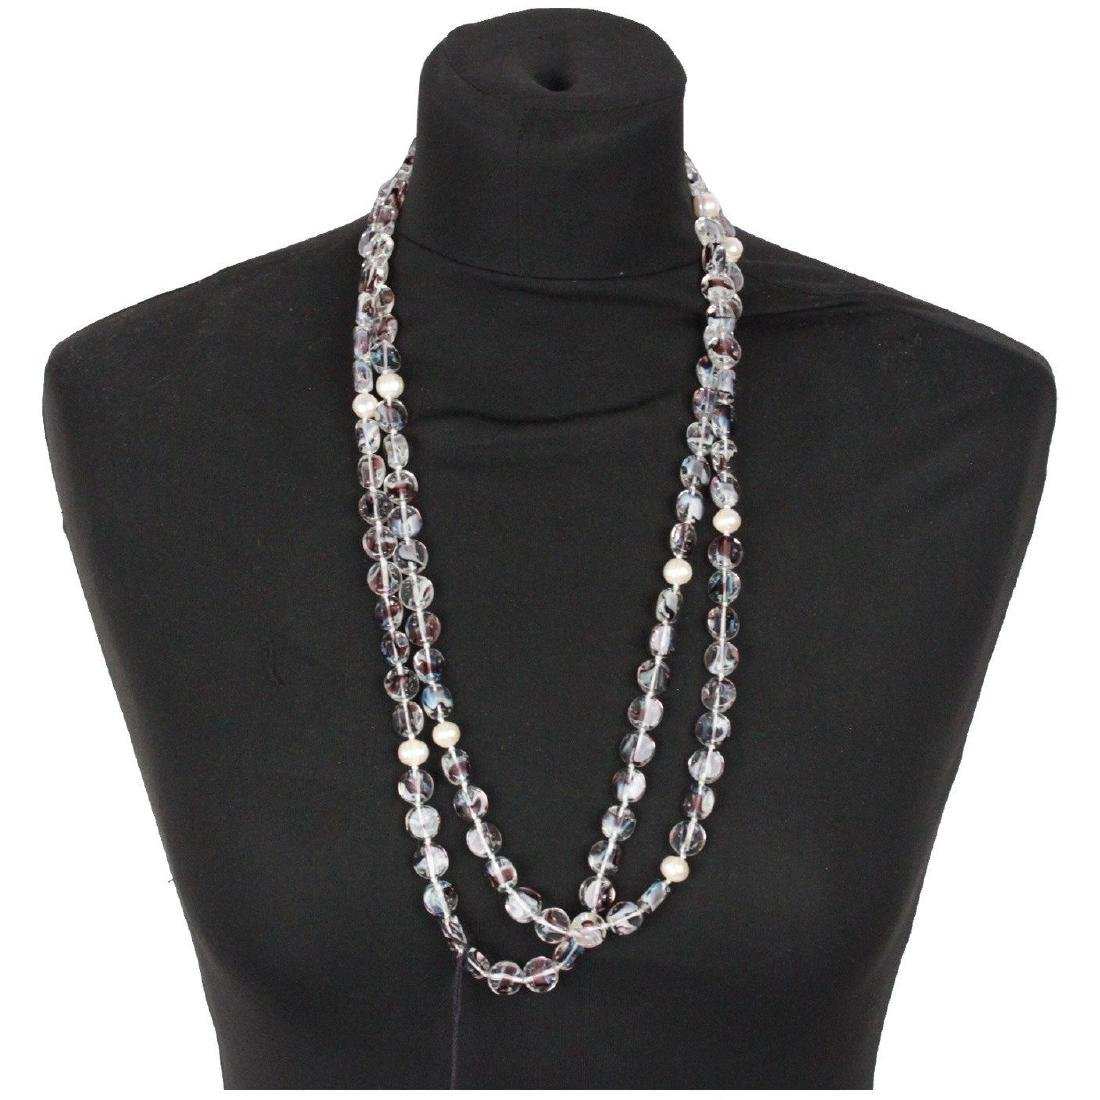 Vintage Round Glass Beads & Faux Pearls Long Necklace